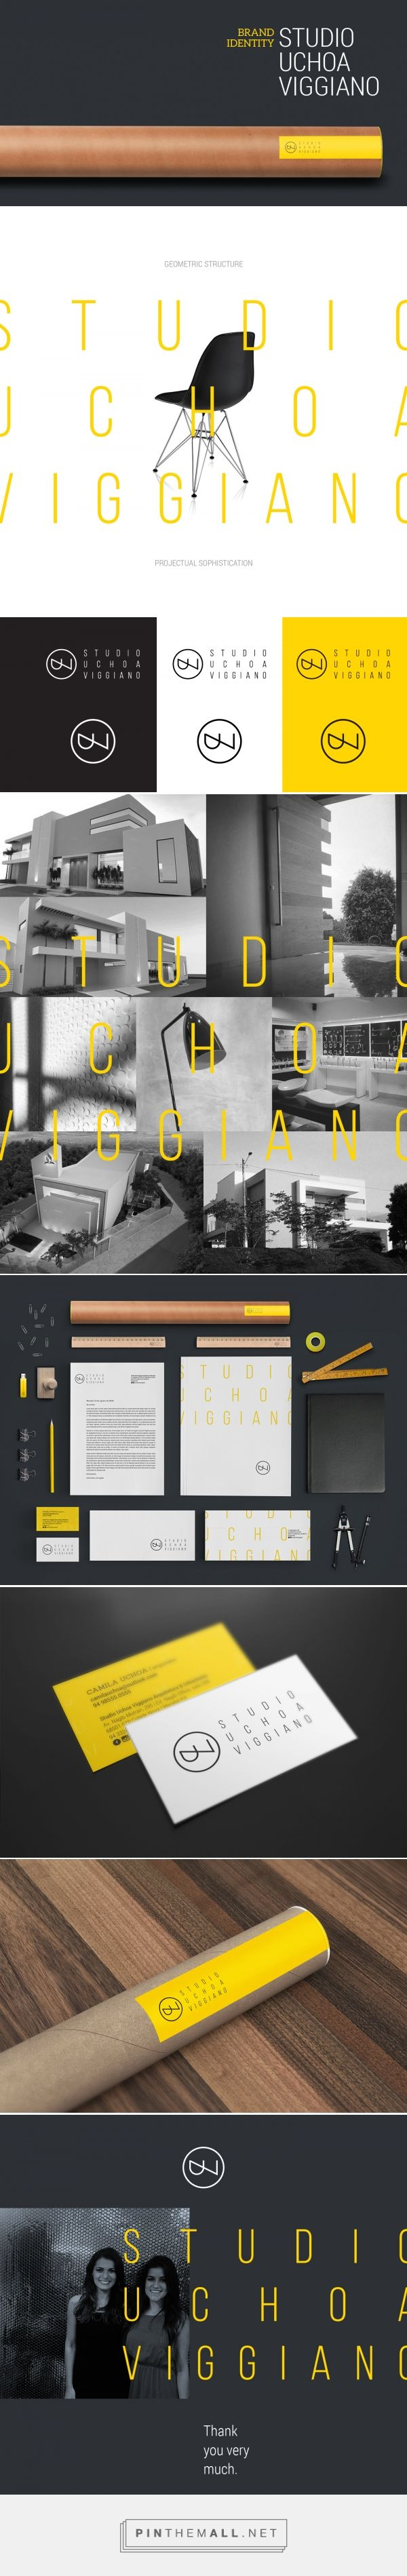 Studio Uchoa Viggiano Architecture Branding by Johnny